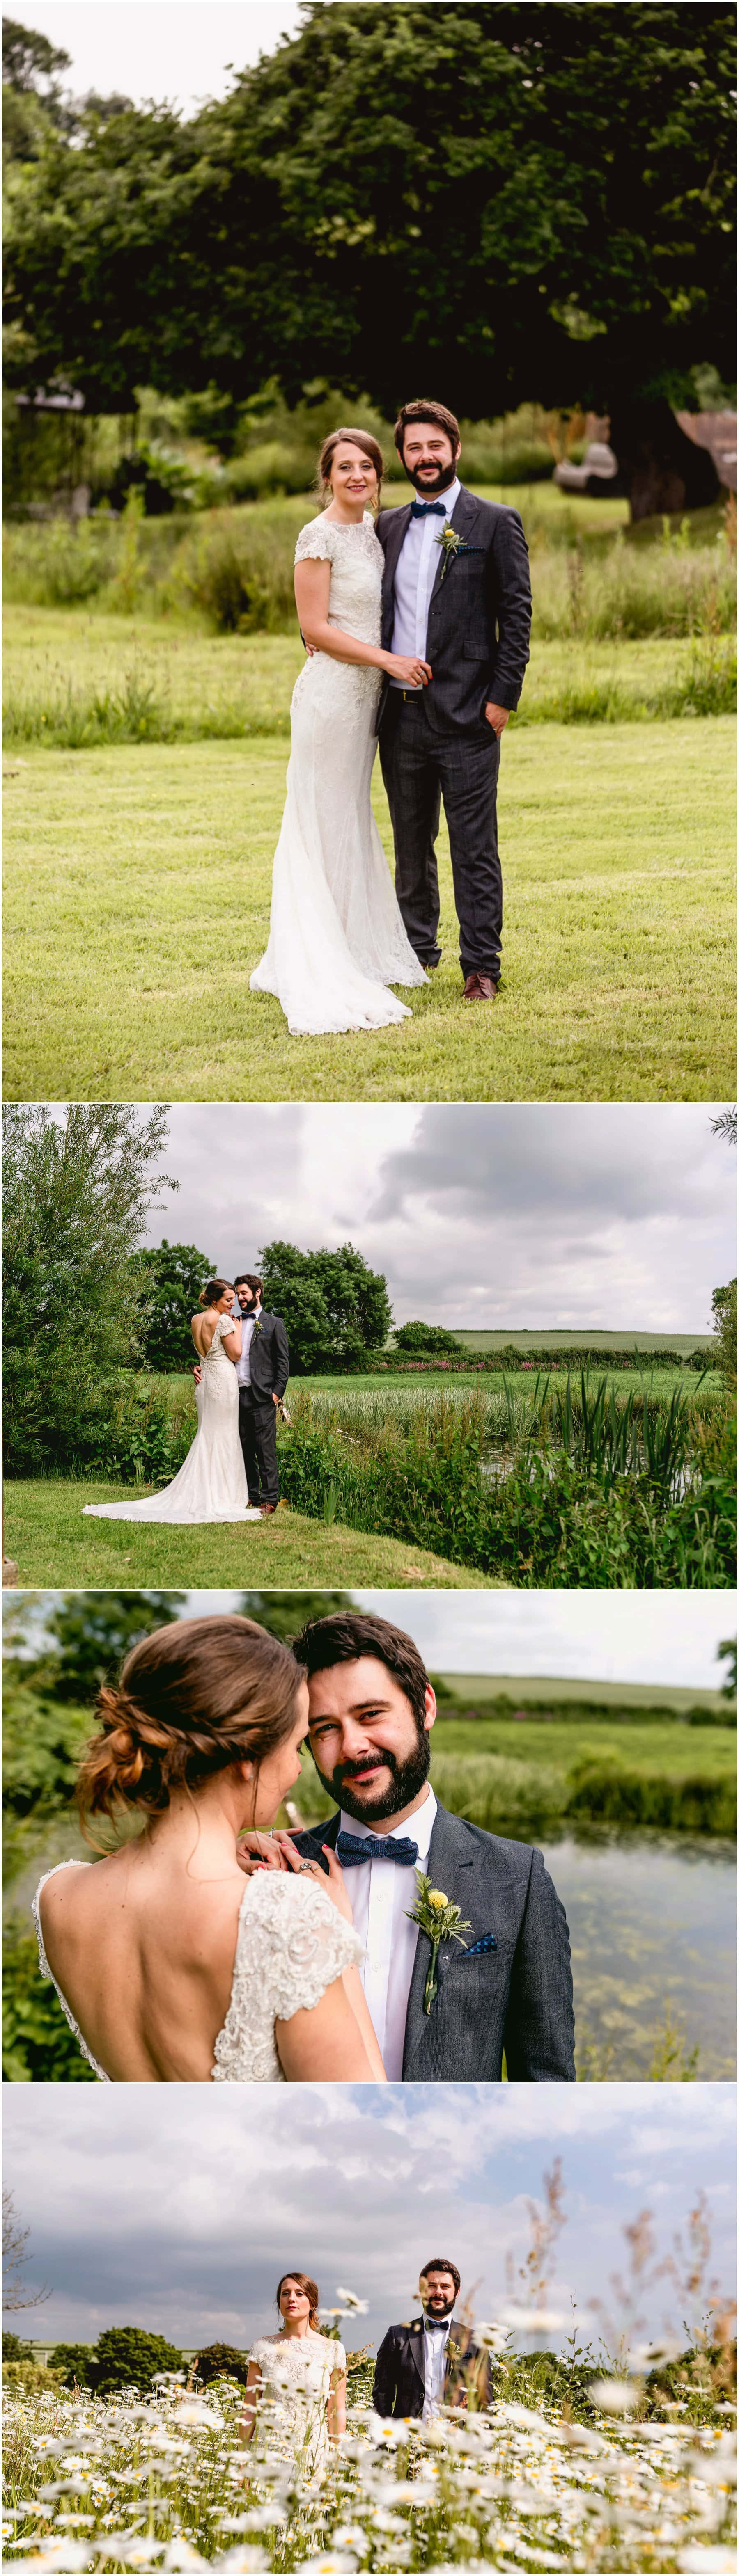 Bridal portraits with Jenna and Ben in the Devonshire countryside